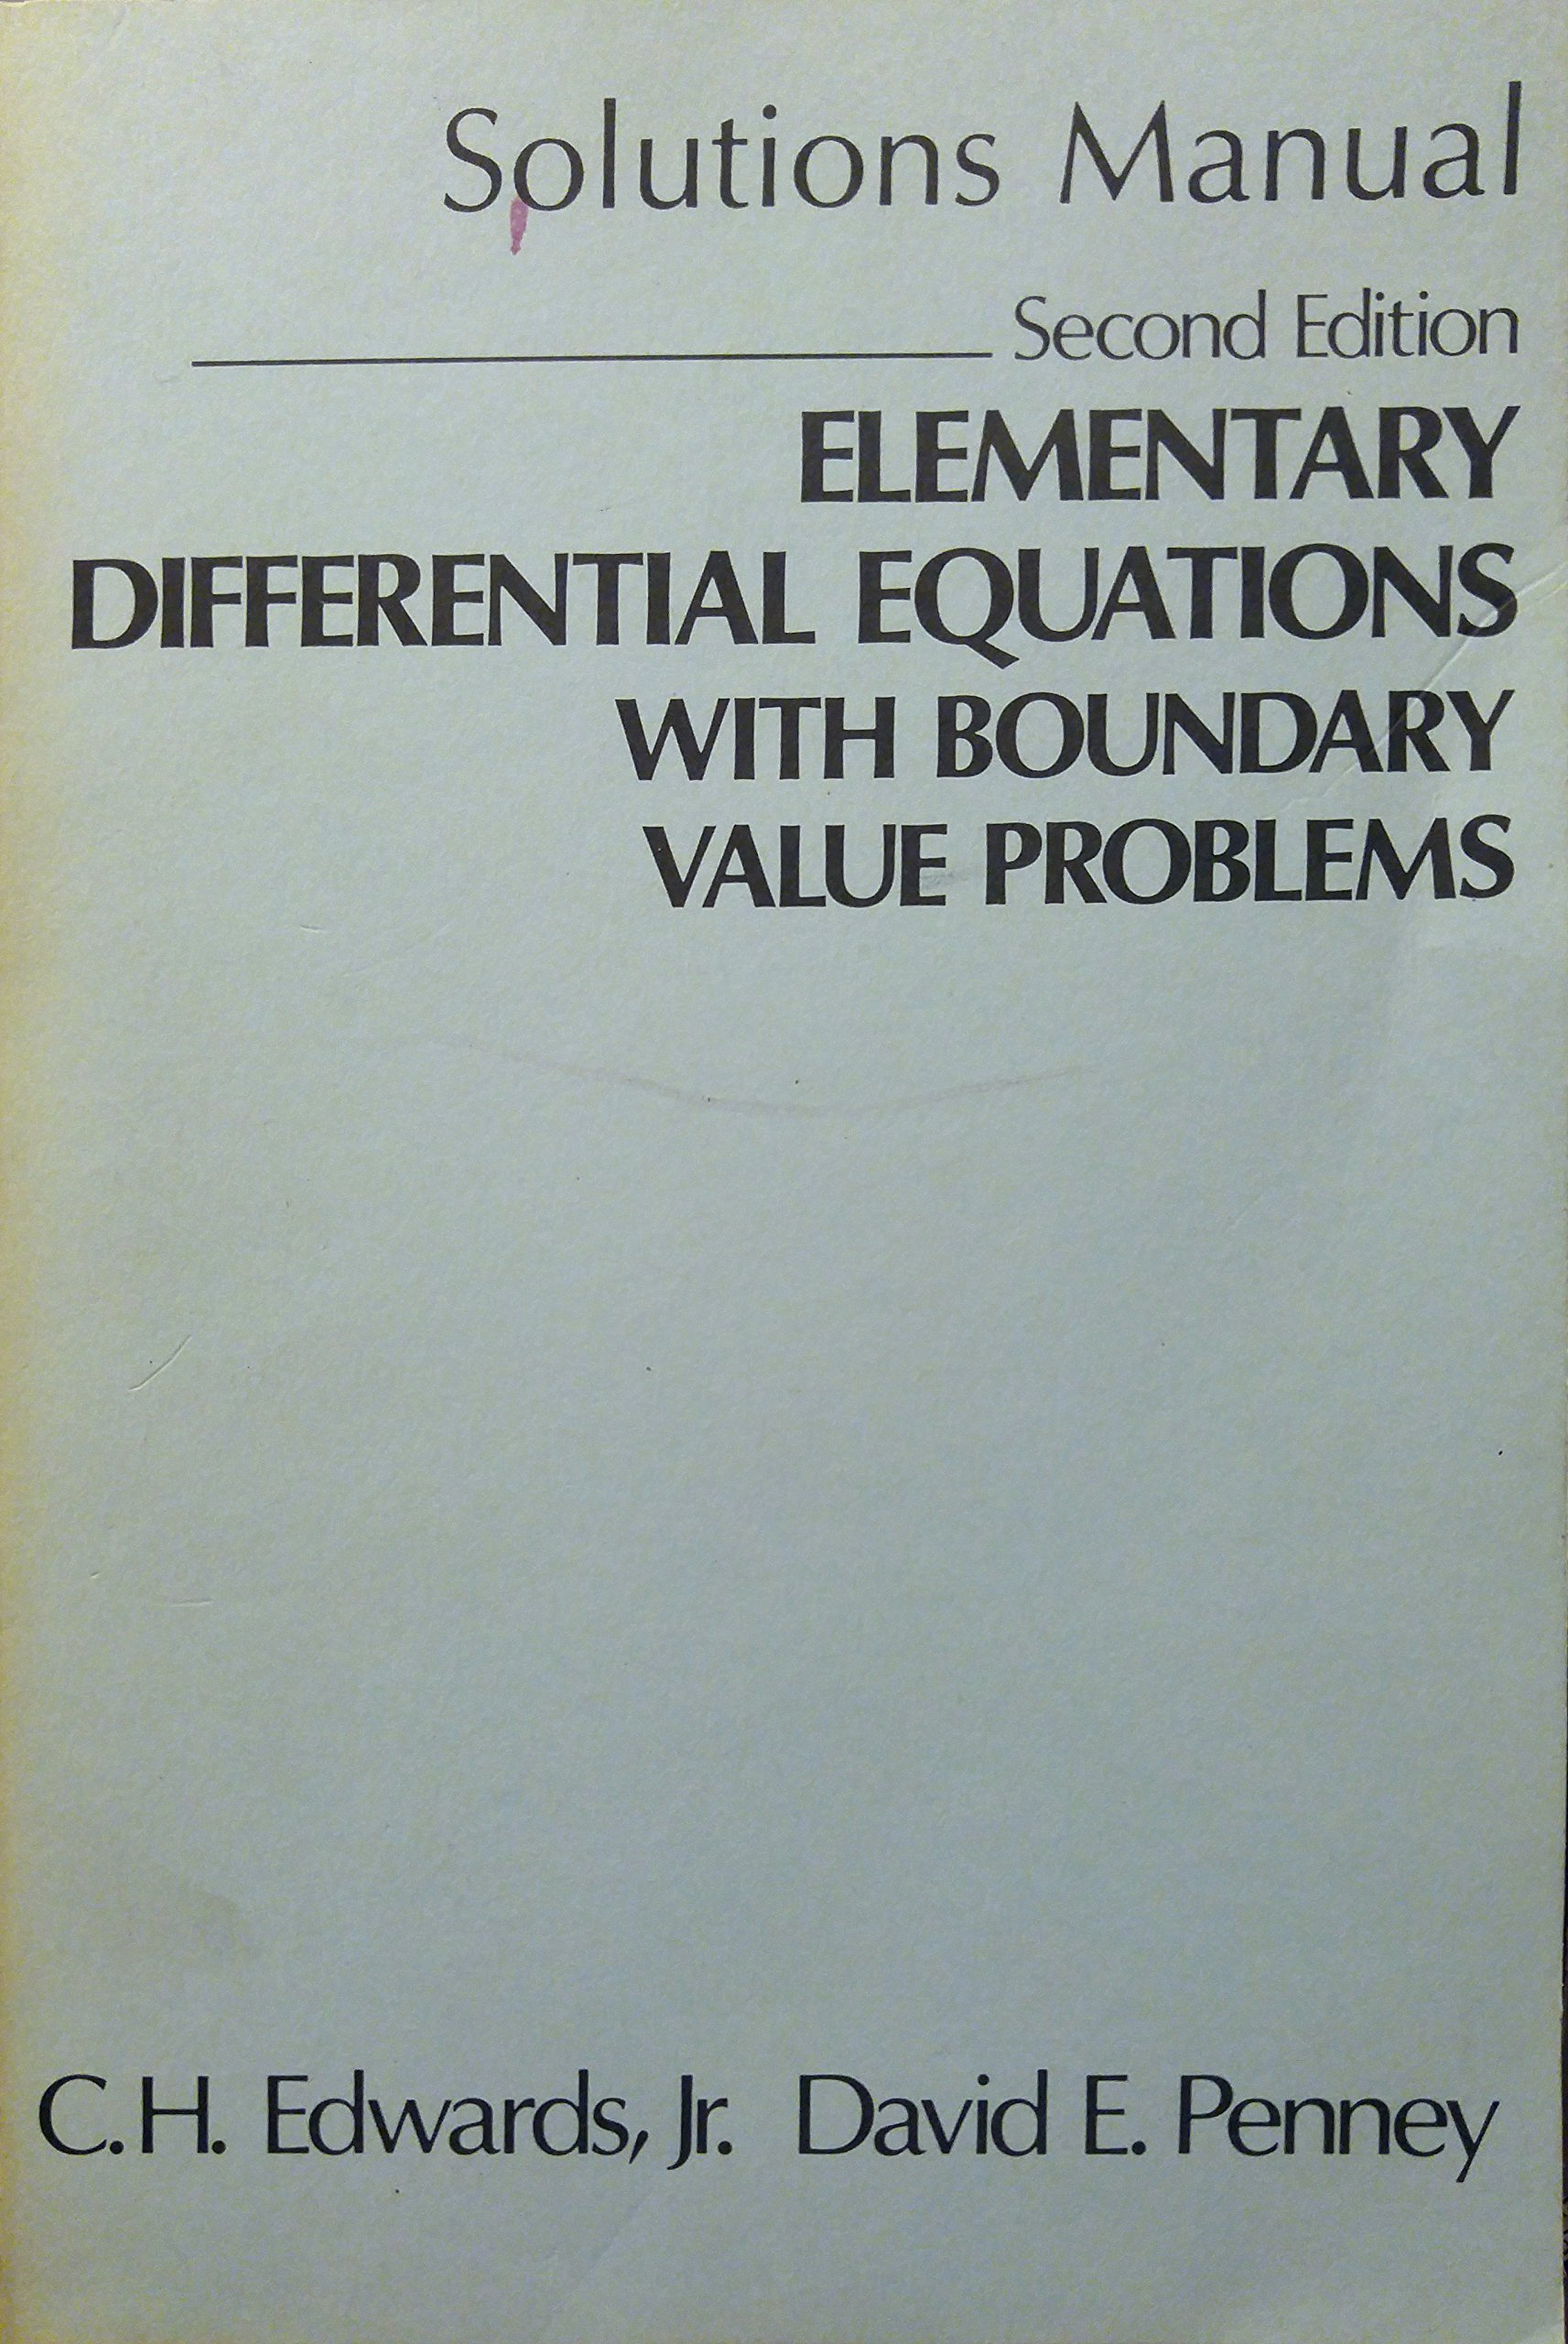 Solutions manual, Elementary differential equations with boundary value  problems, 2nd edition: C. H Edwards: 9780132540797: Amazon.com: Books